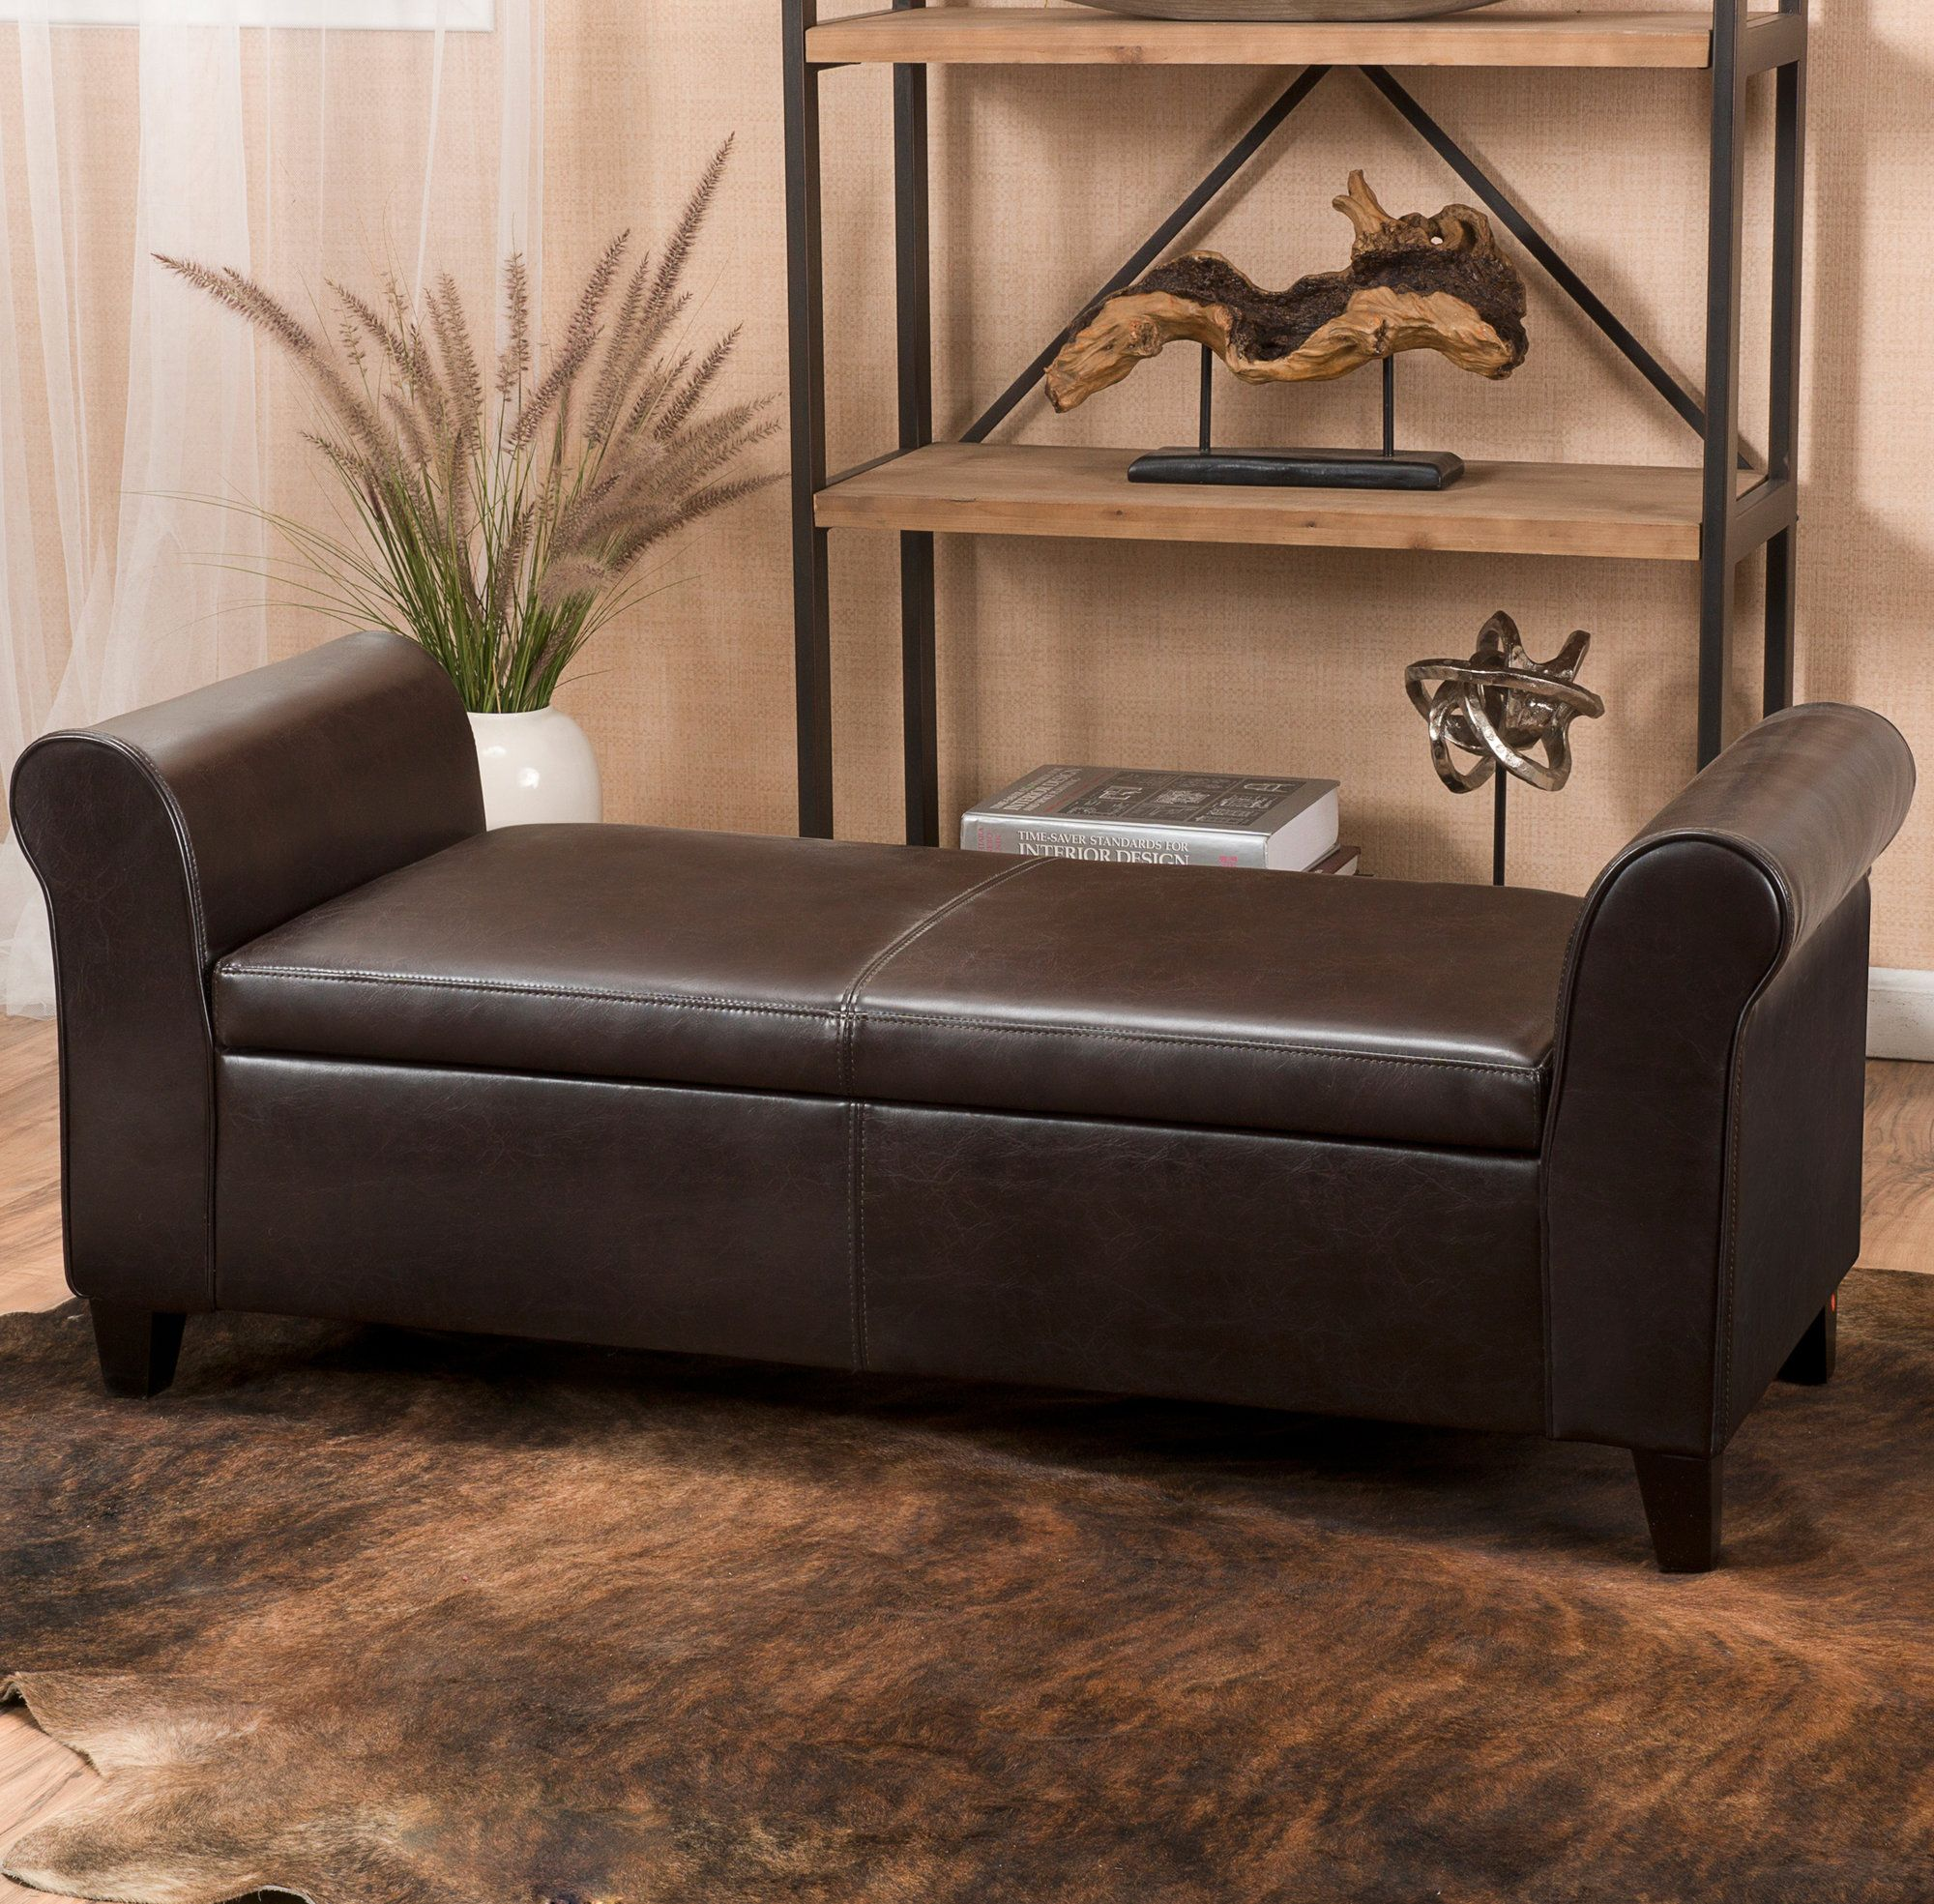 Varian Faux Leather Flip Top Storage Bench Bench With Storage Luxury Home Furniture Bedroom Storage